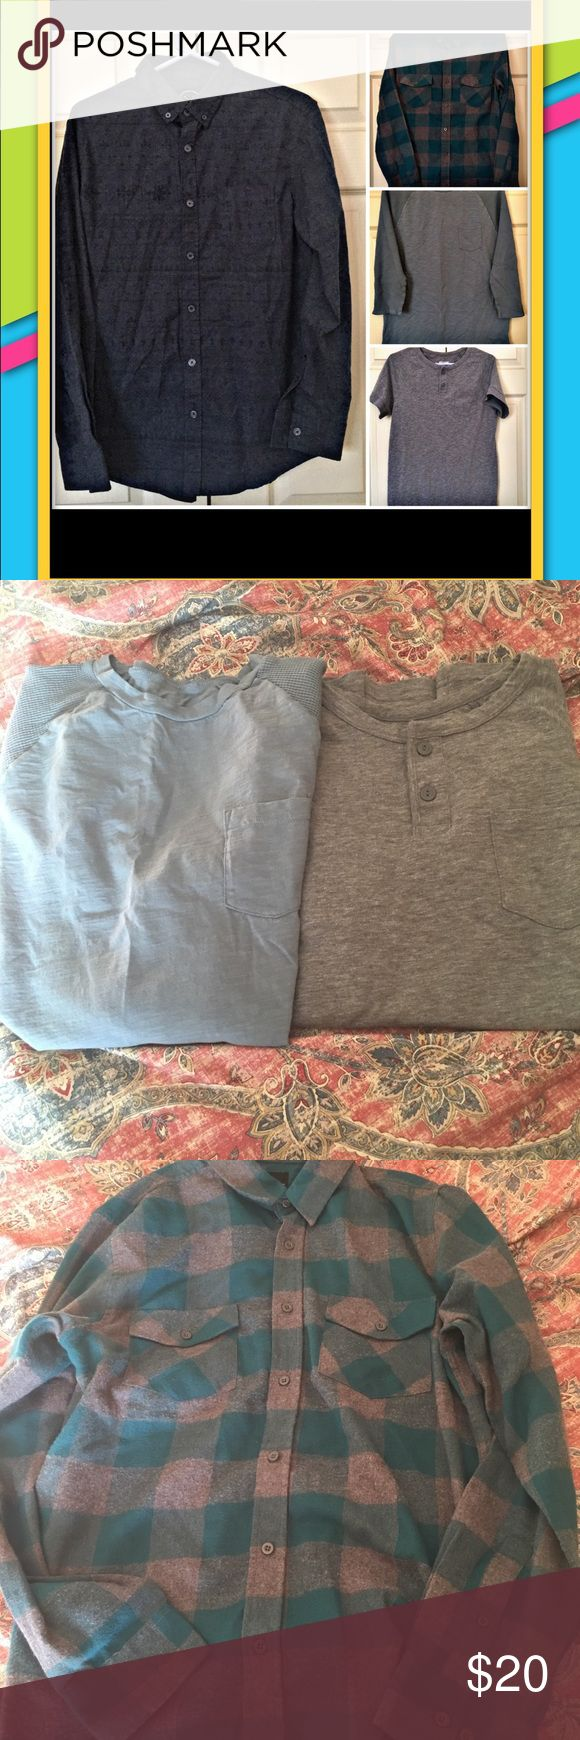 🧢🎉MENS DRESSY/CASUAL SHIRTS🎉🧢 Selling a bundle of men's casual/dressy shirts! All in great condition! No holes or stains! Any questions feel free to ask! I can give you more details regarding items if you are interested! As in, material, measurements, more pics etc. Shirts Casual Button Down Shirts